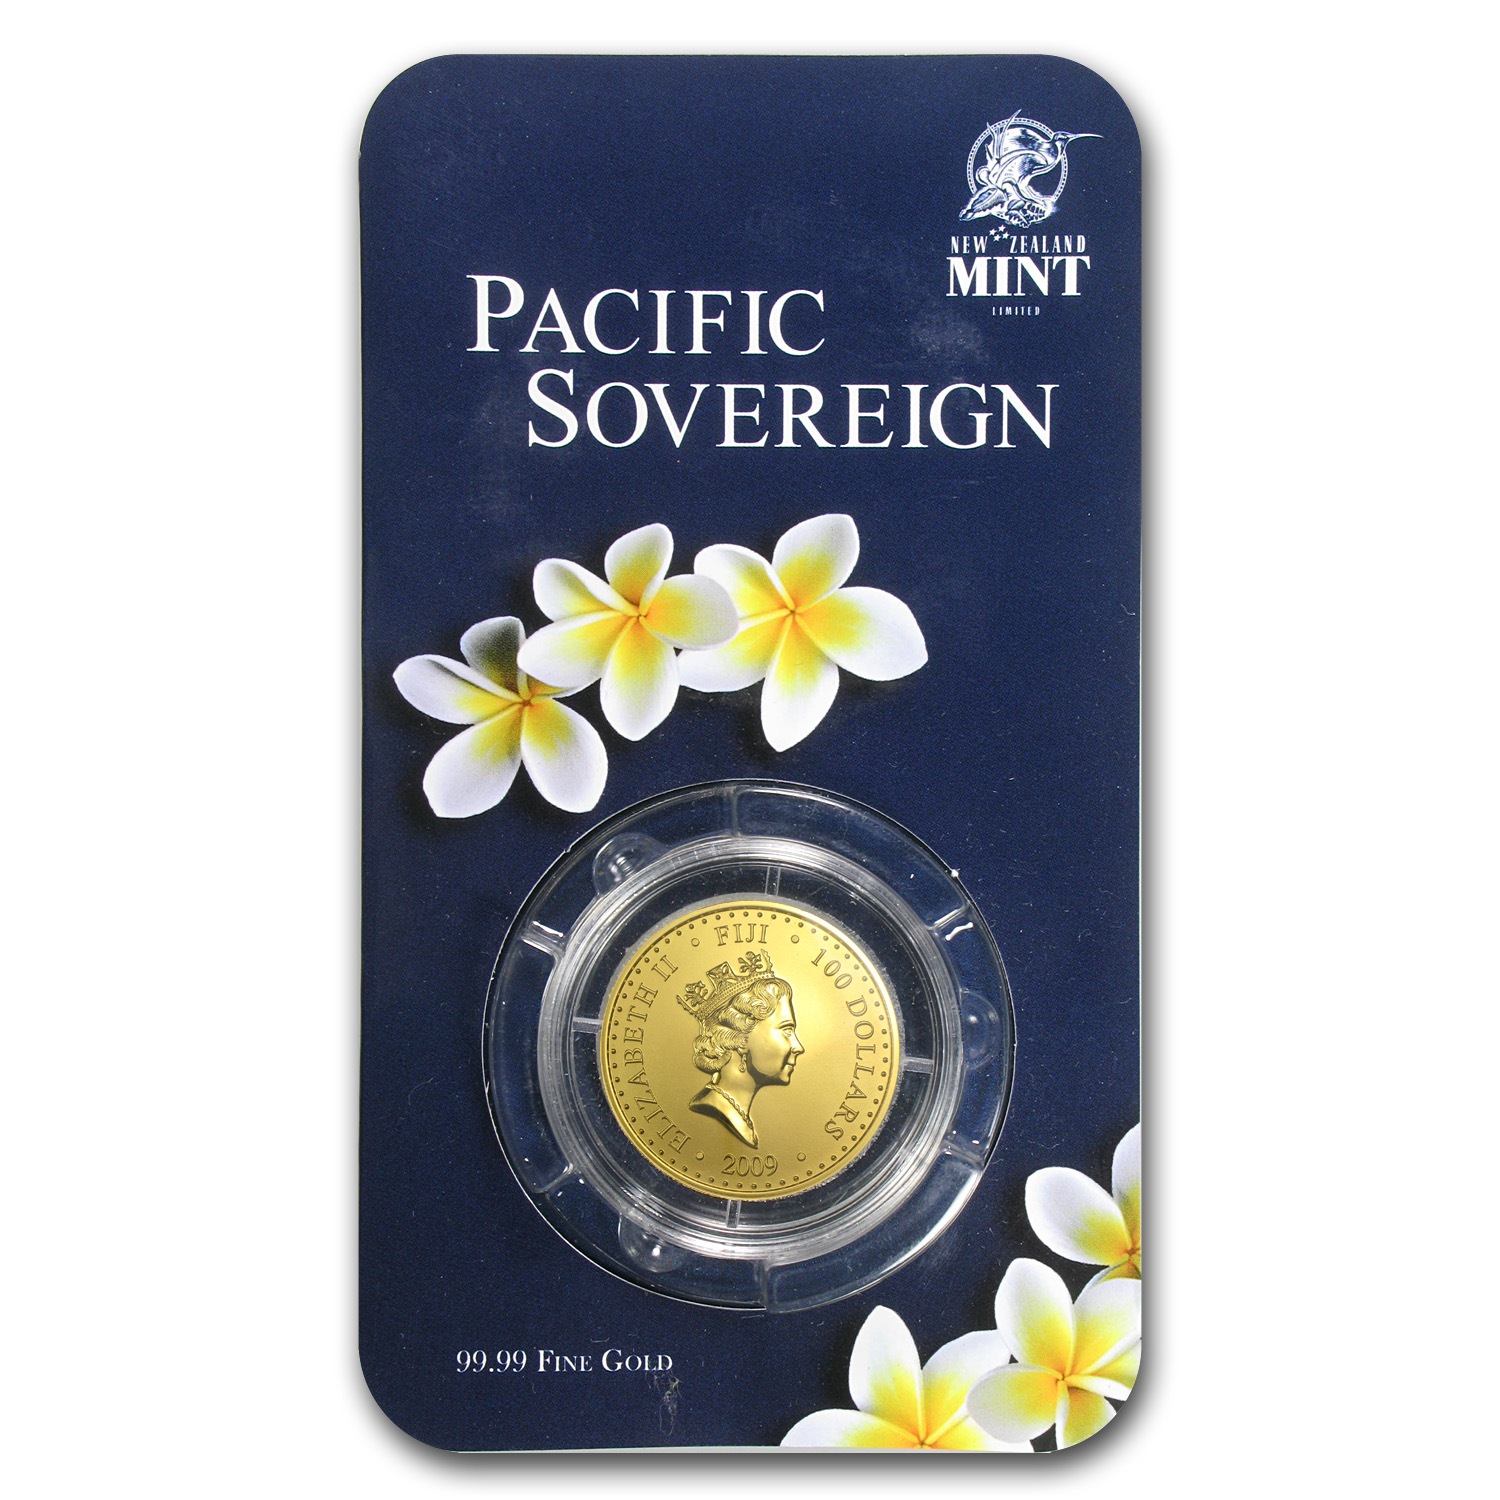 2009 Fiji 1 oz Gold $100 Pacific Sovereign BU (In Assay Card)